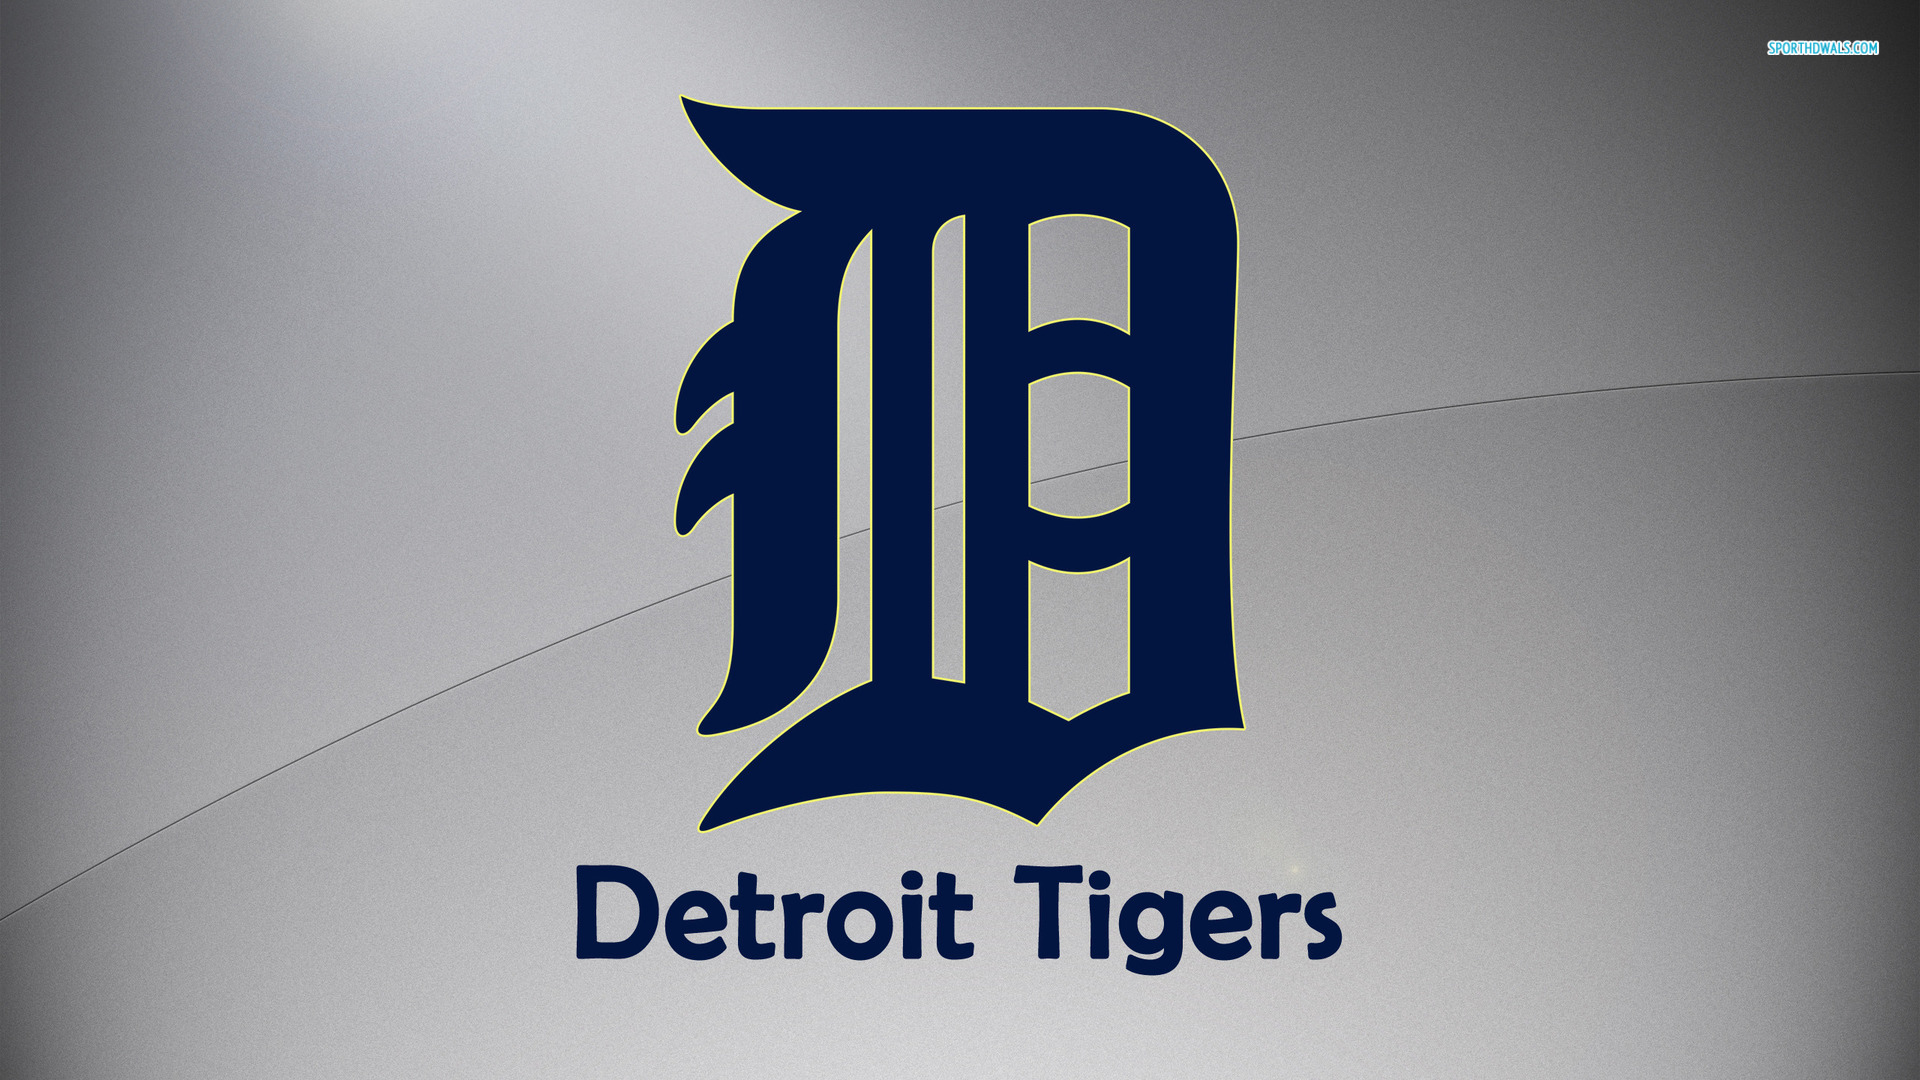 Detroit-Tigers-wallpaper-wp3404637